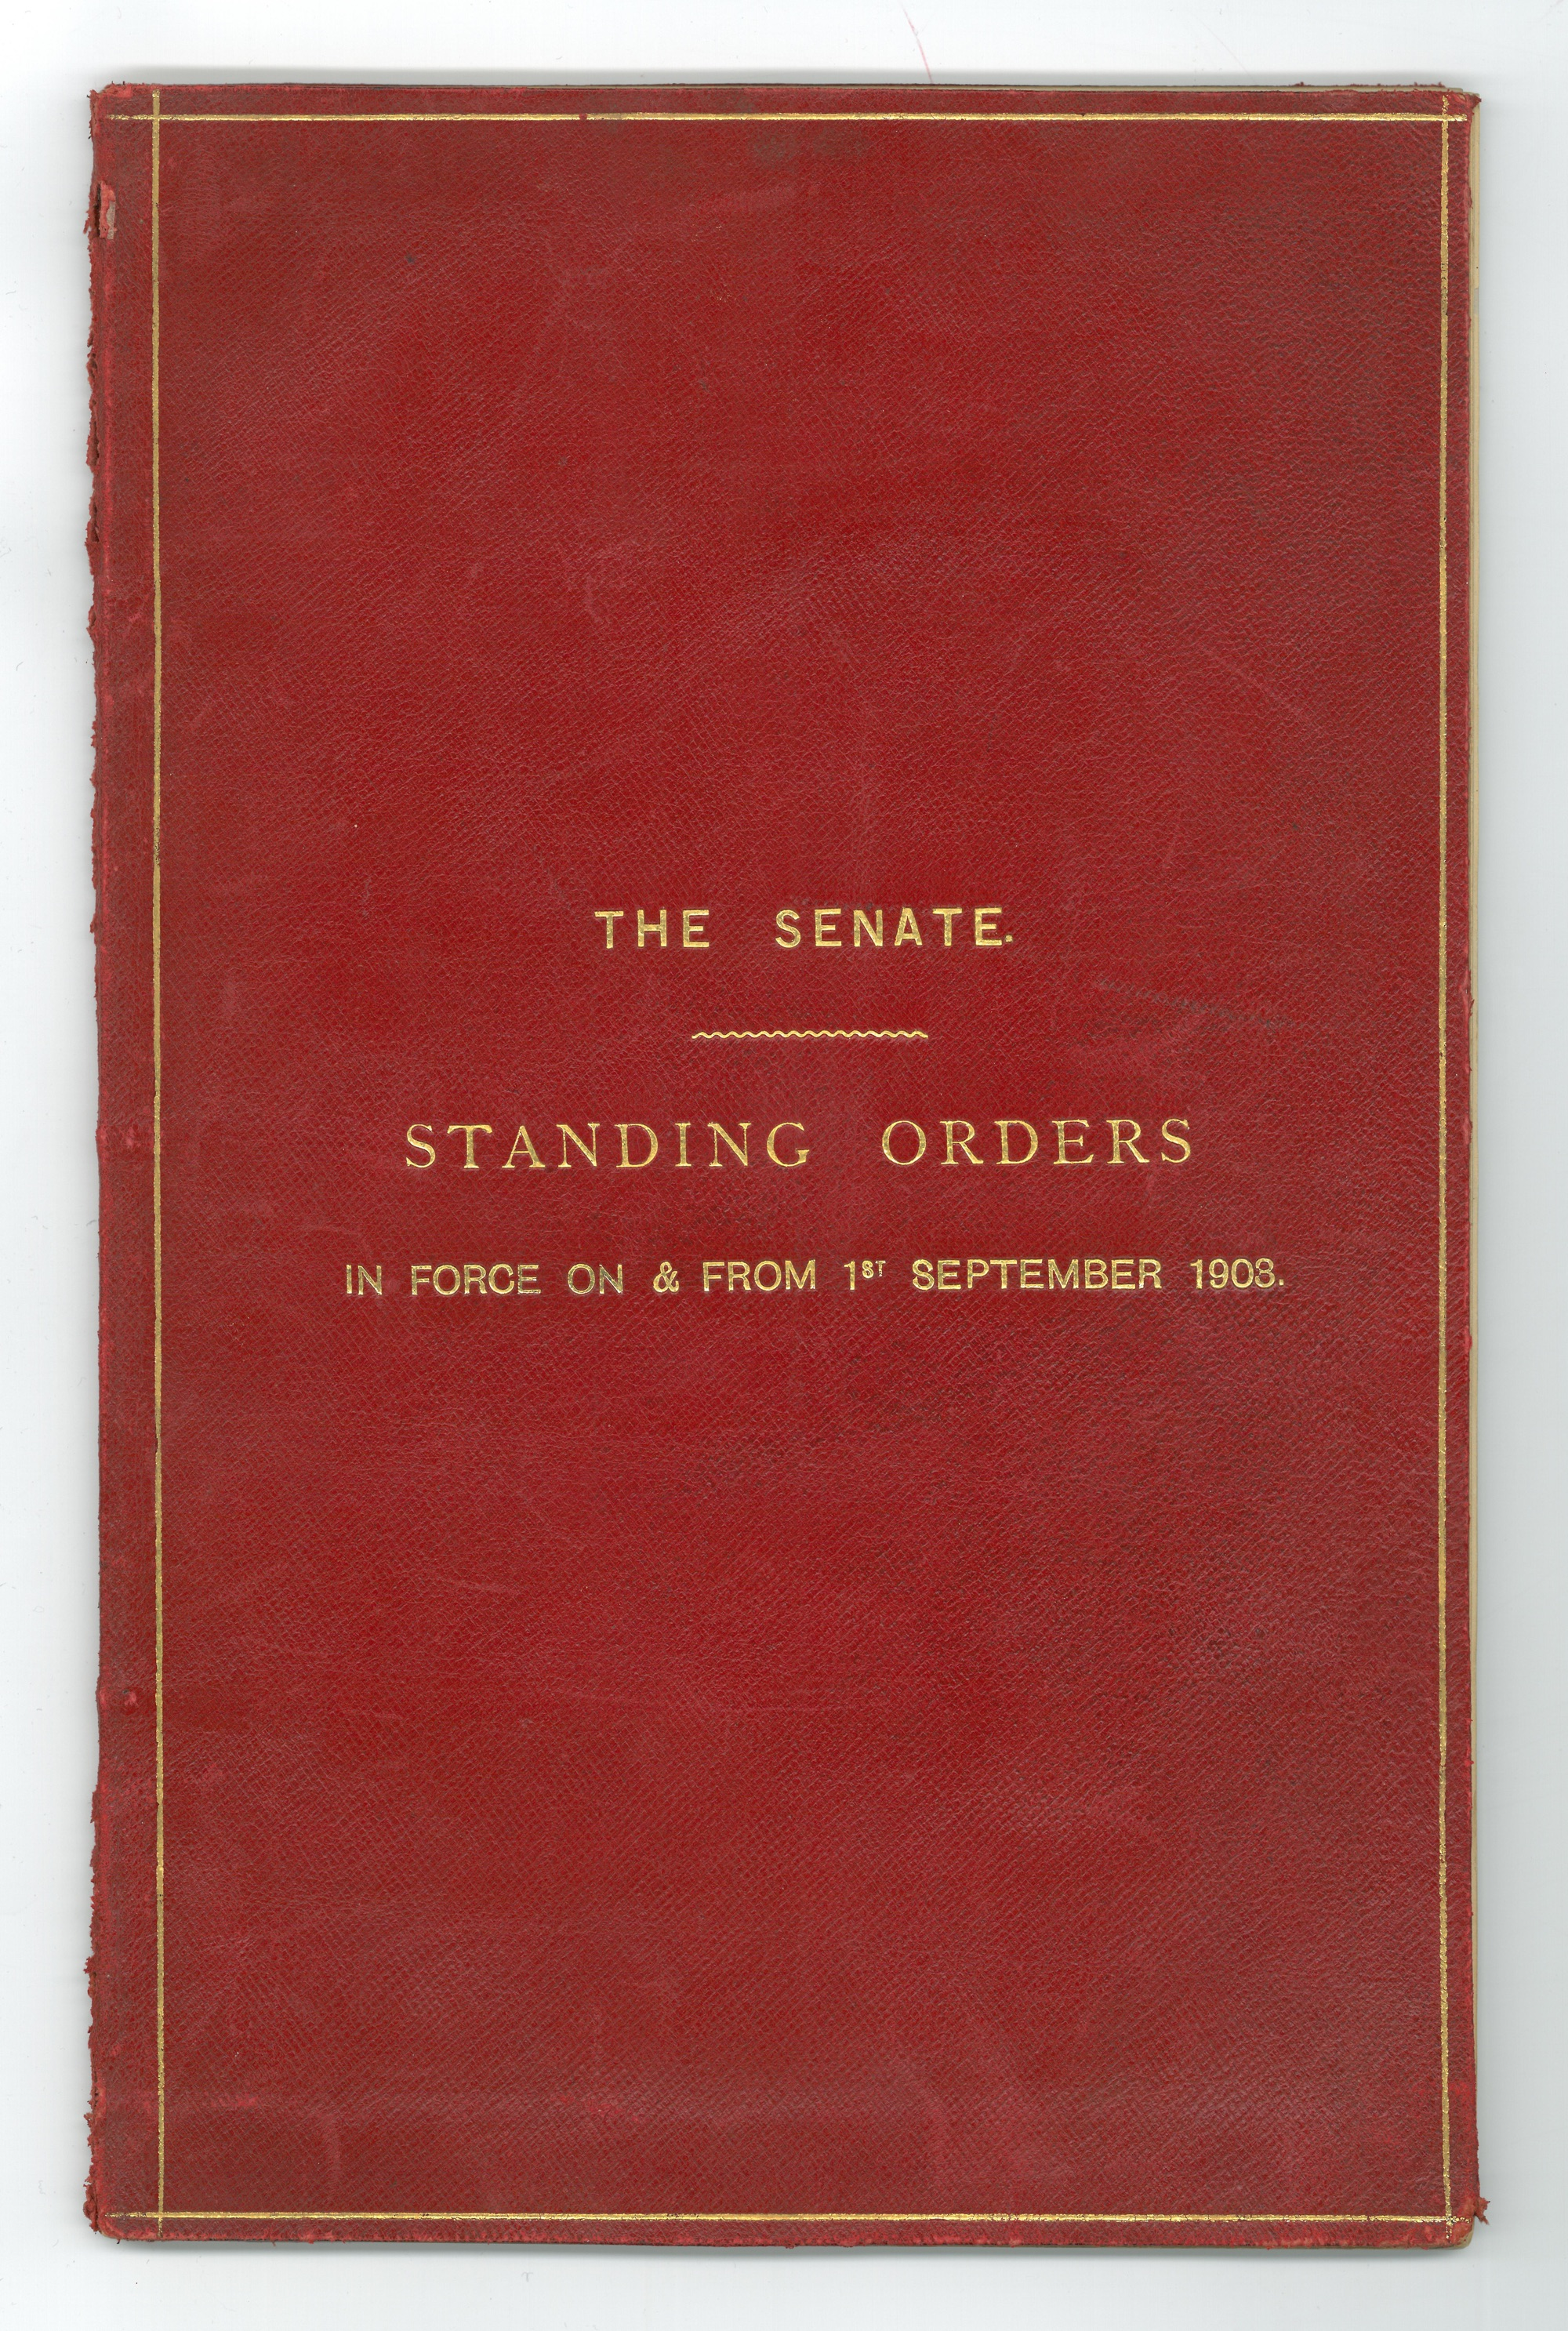 The first Senate standing orders of 1903